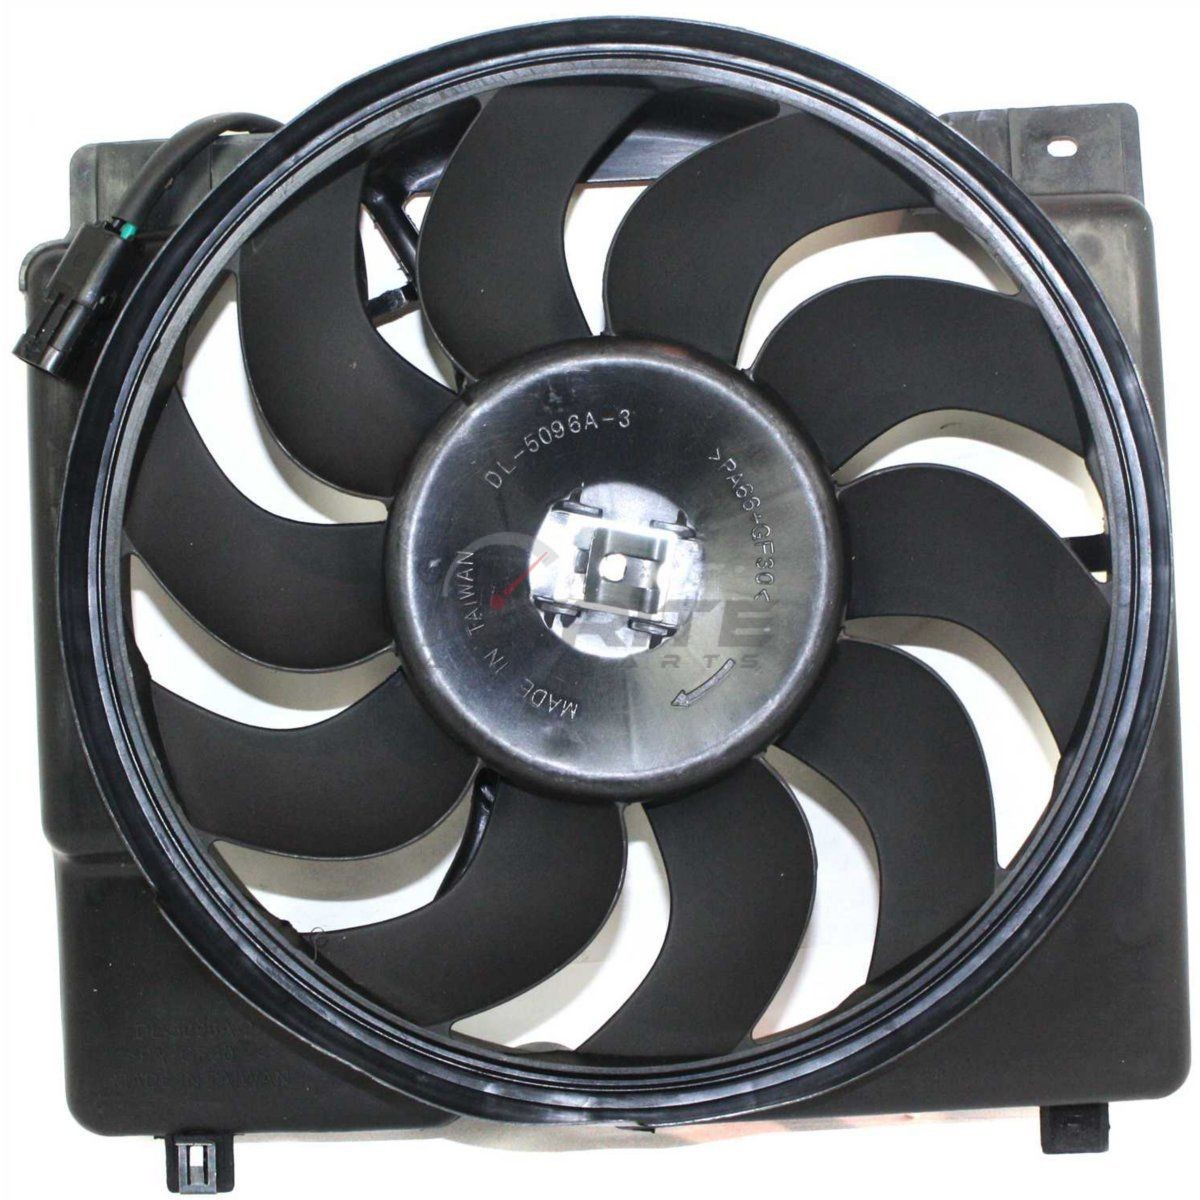 hight resolution of motorcycle parts fits jeep cherokee radiator fan shroud 6 cyl 1995 1996 1997 1998 1999 2000 2001